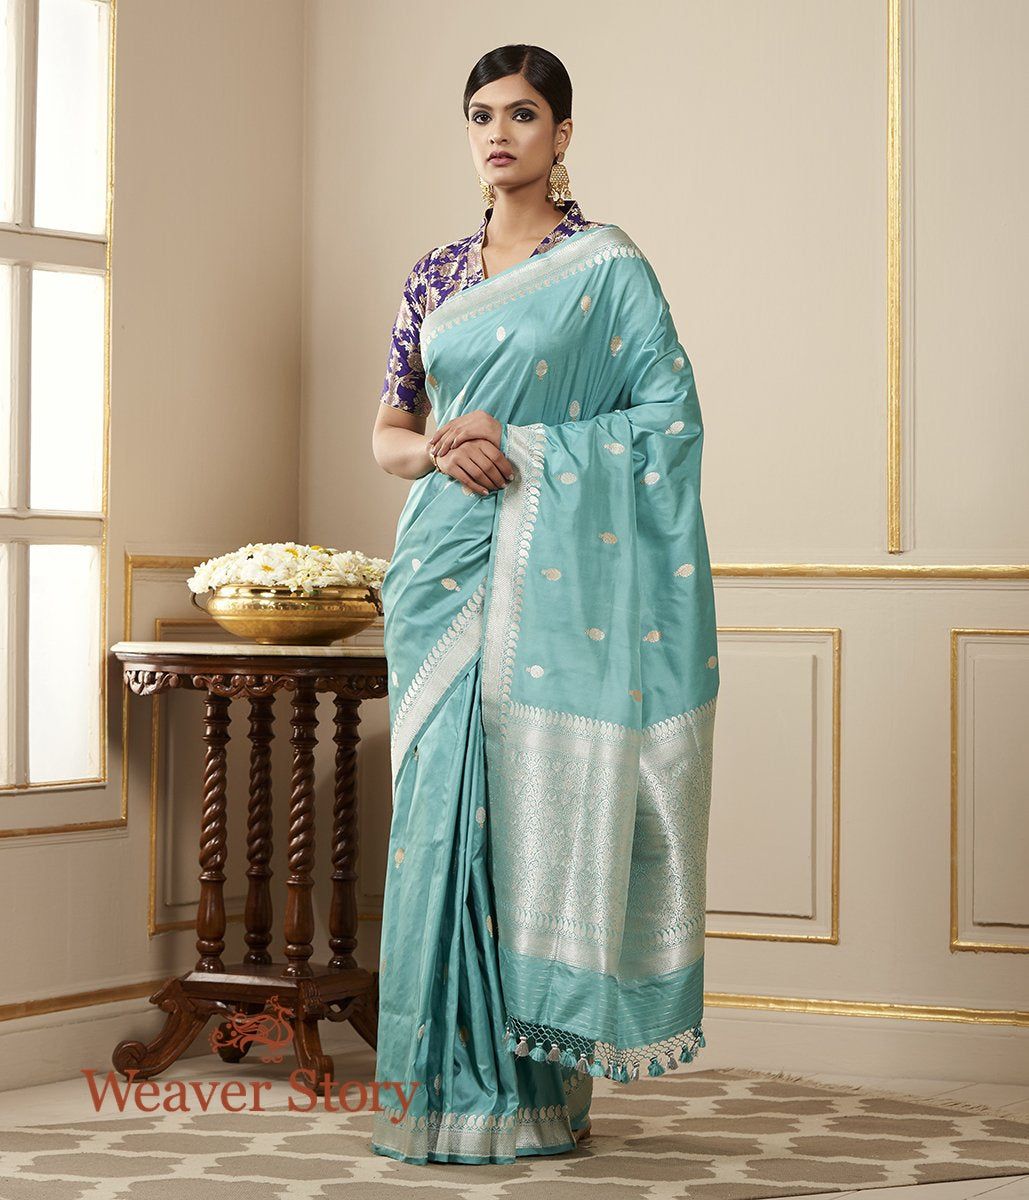 Handwoven Light Blue Banarasi Silk Saree with Kadhwa Motifs